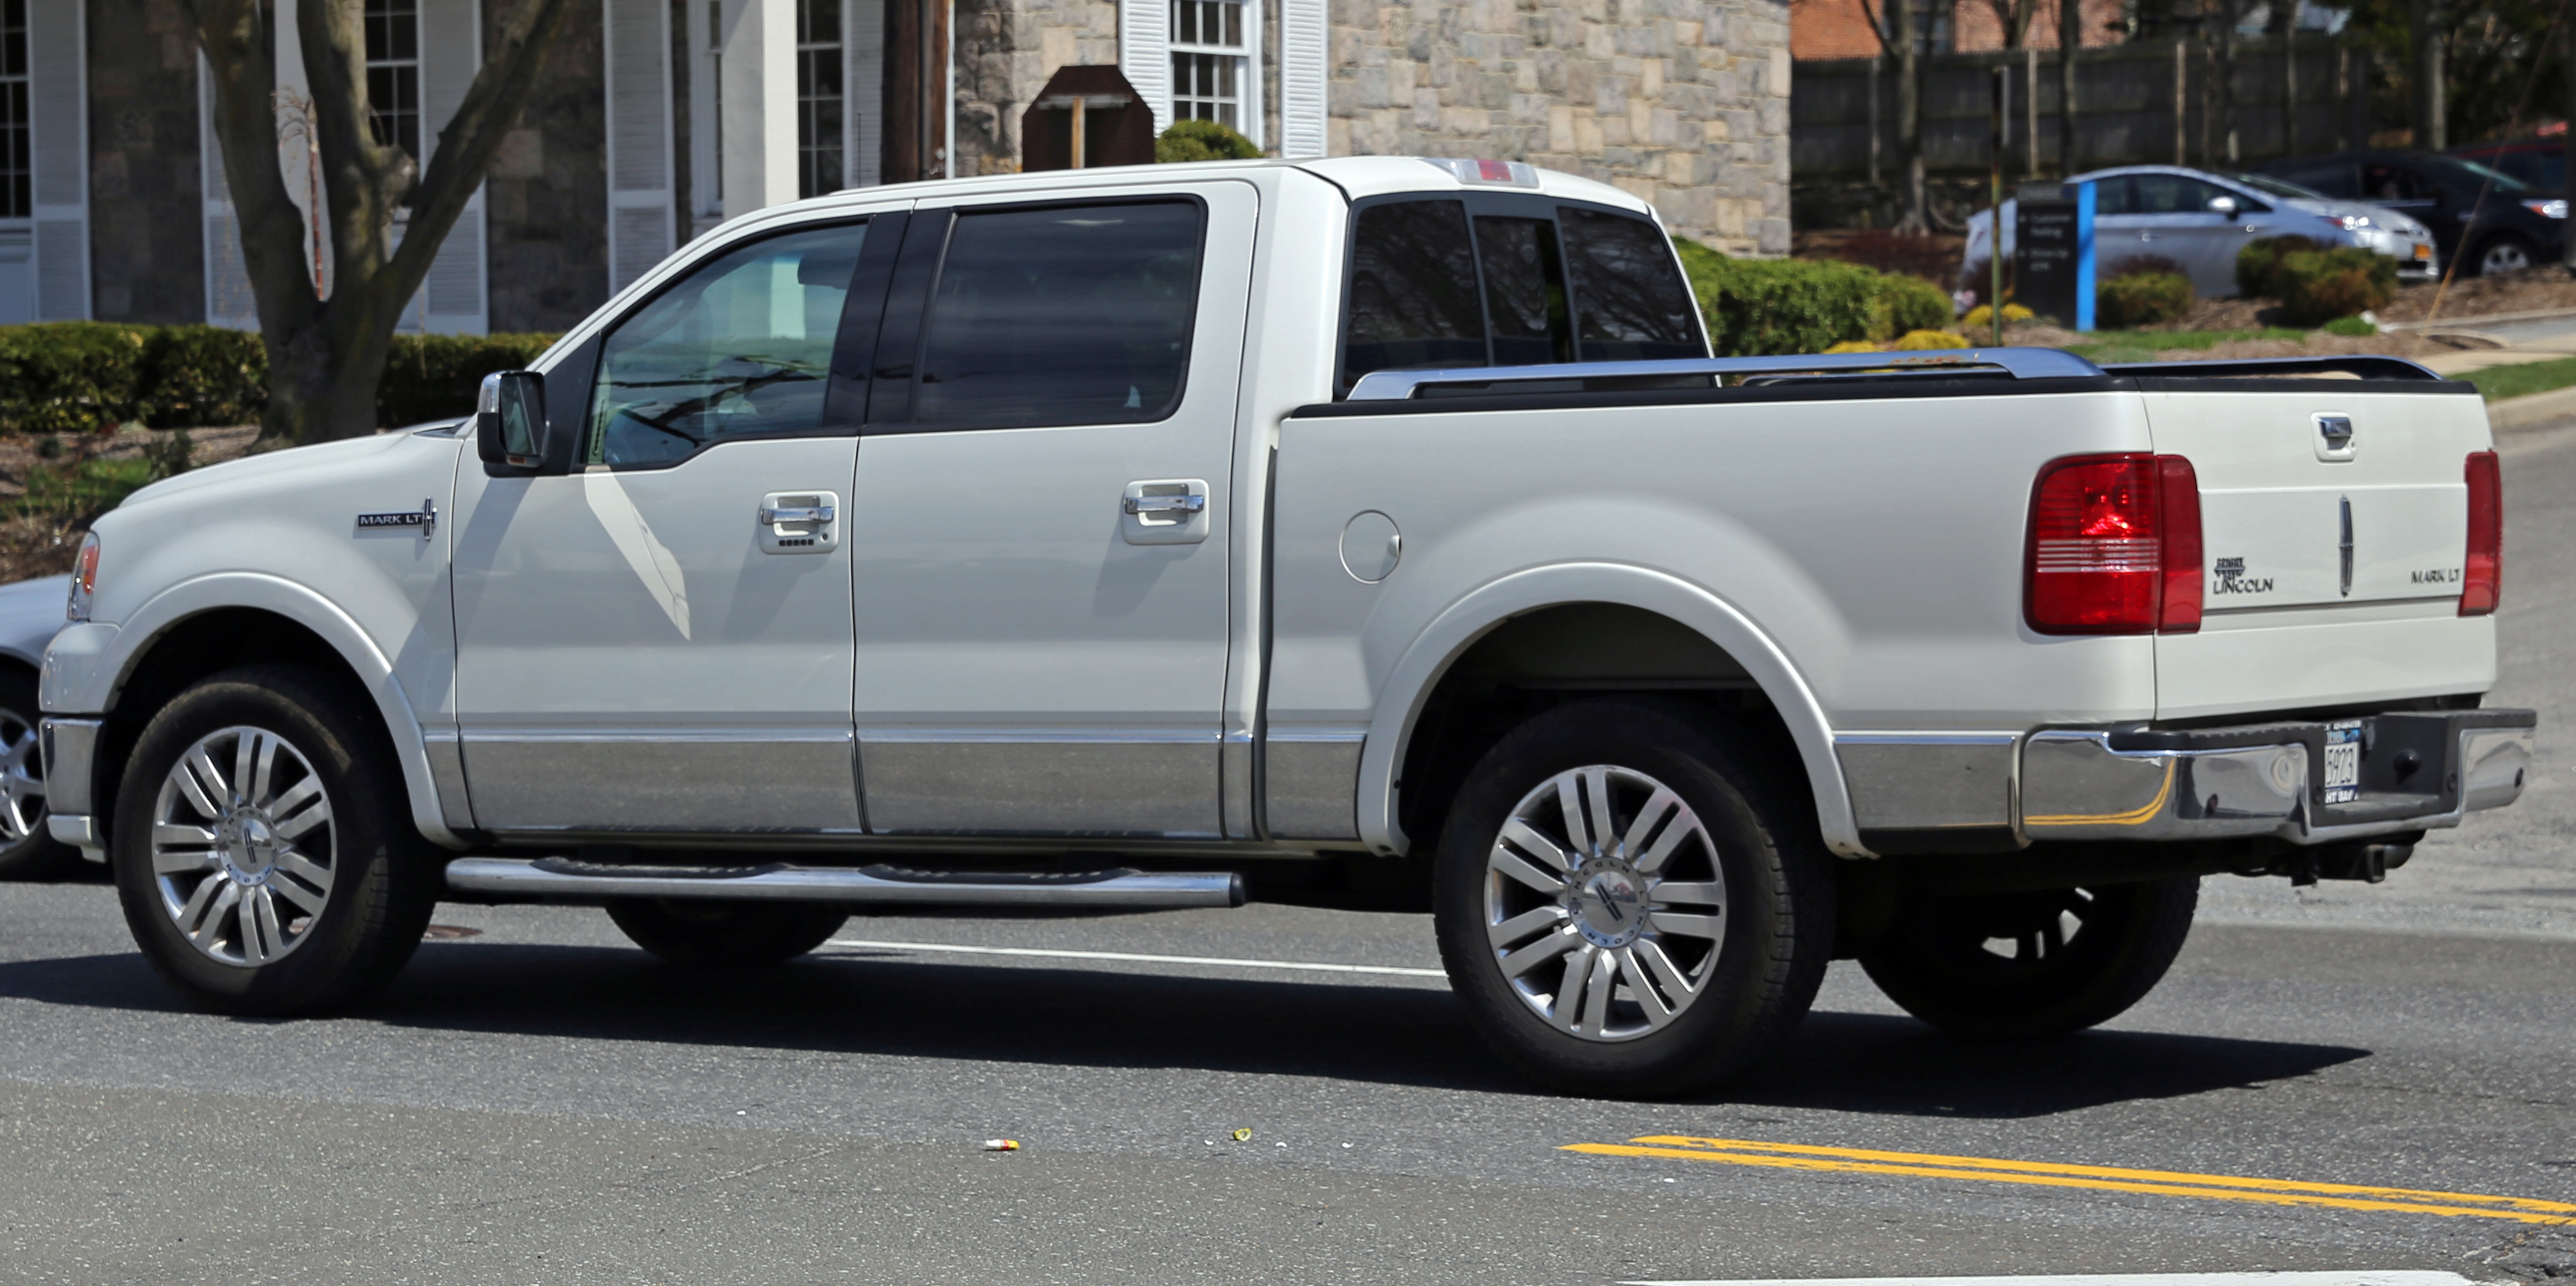 File Lincoln Mark LT rear left ¾ view Wikimedia mons